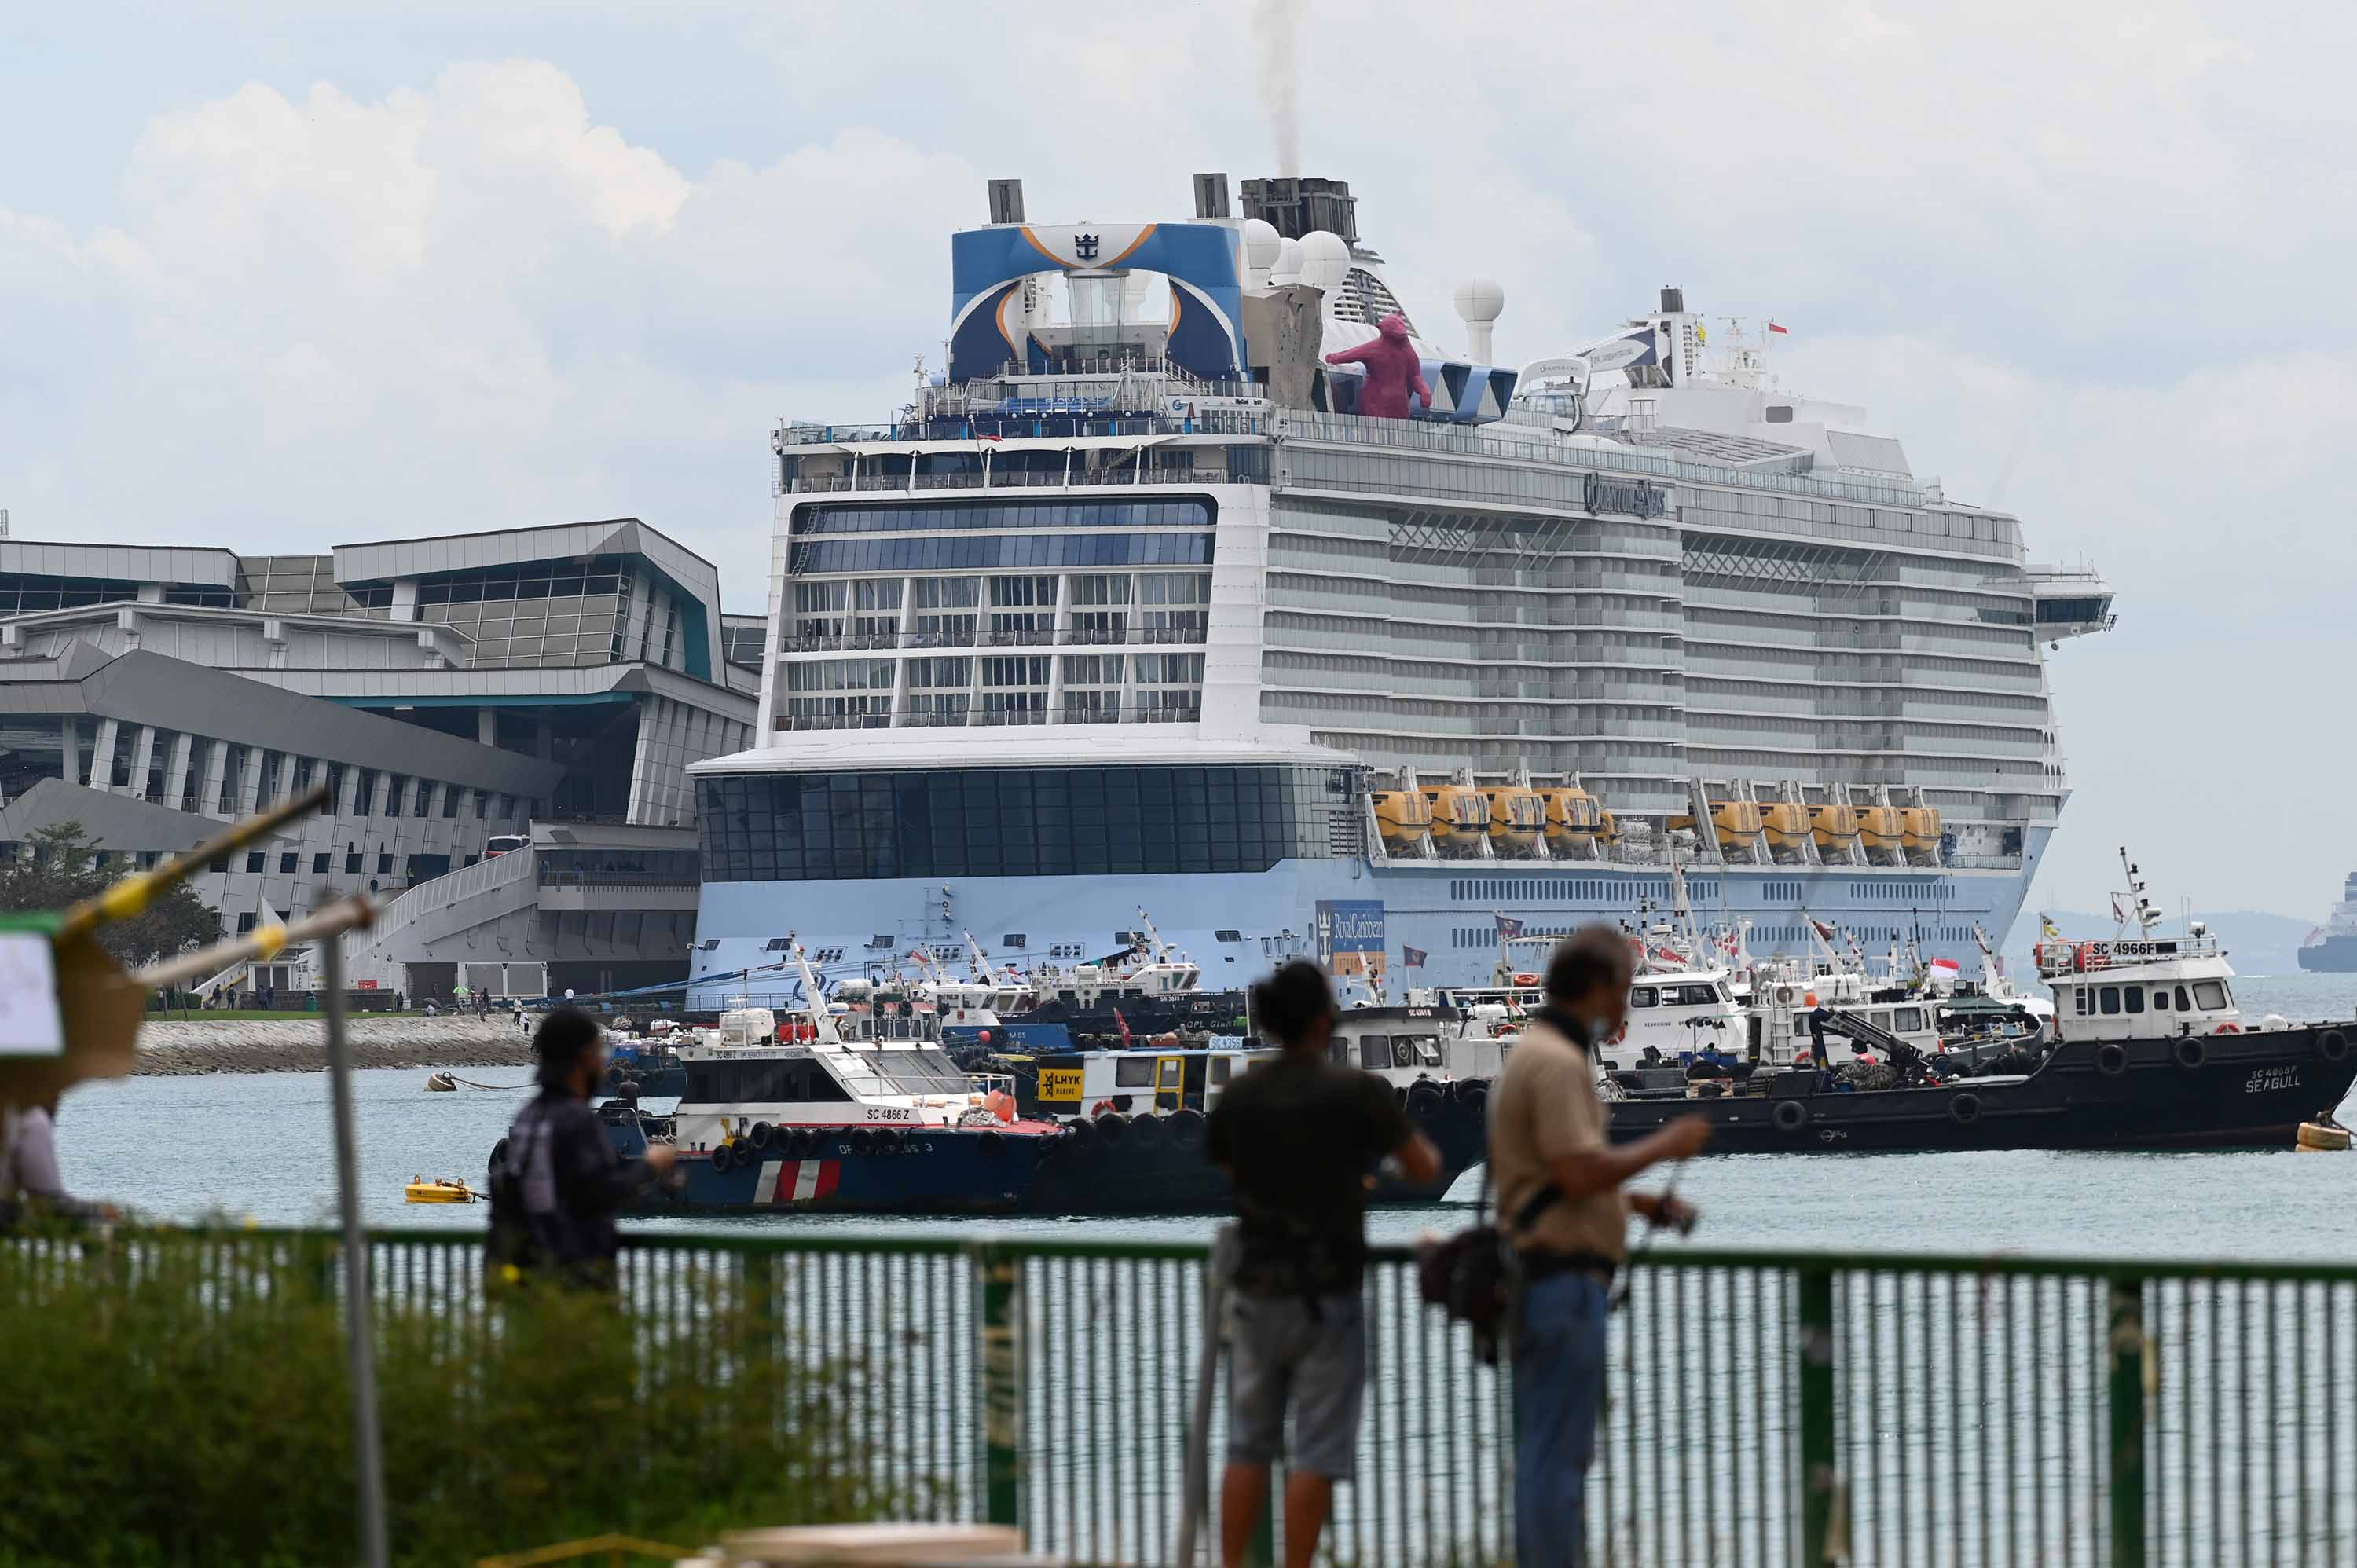 The Royal Carribean International cruise ship Quantum of the Seas is seen docked at Marina Bay Cruise Centre in Singapore on December 9.